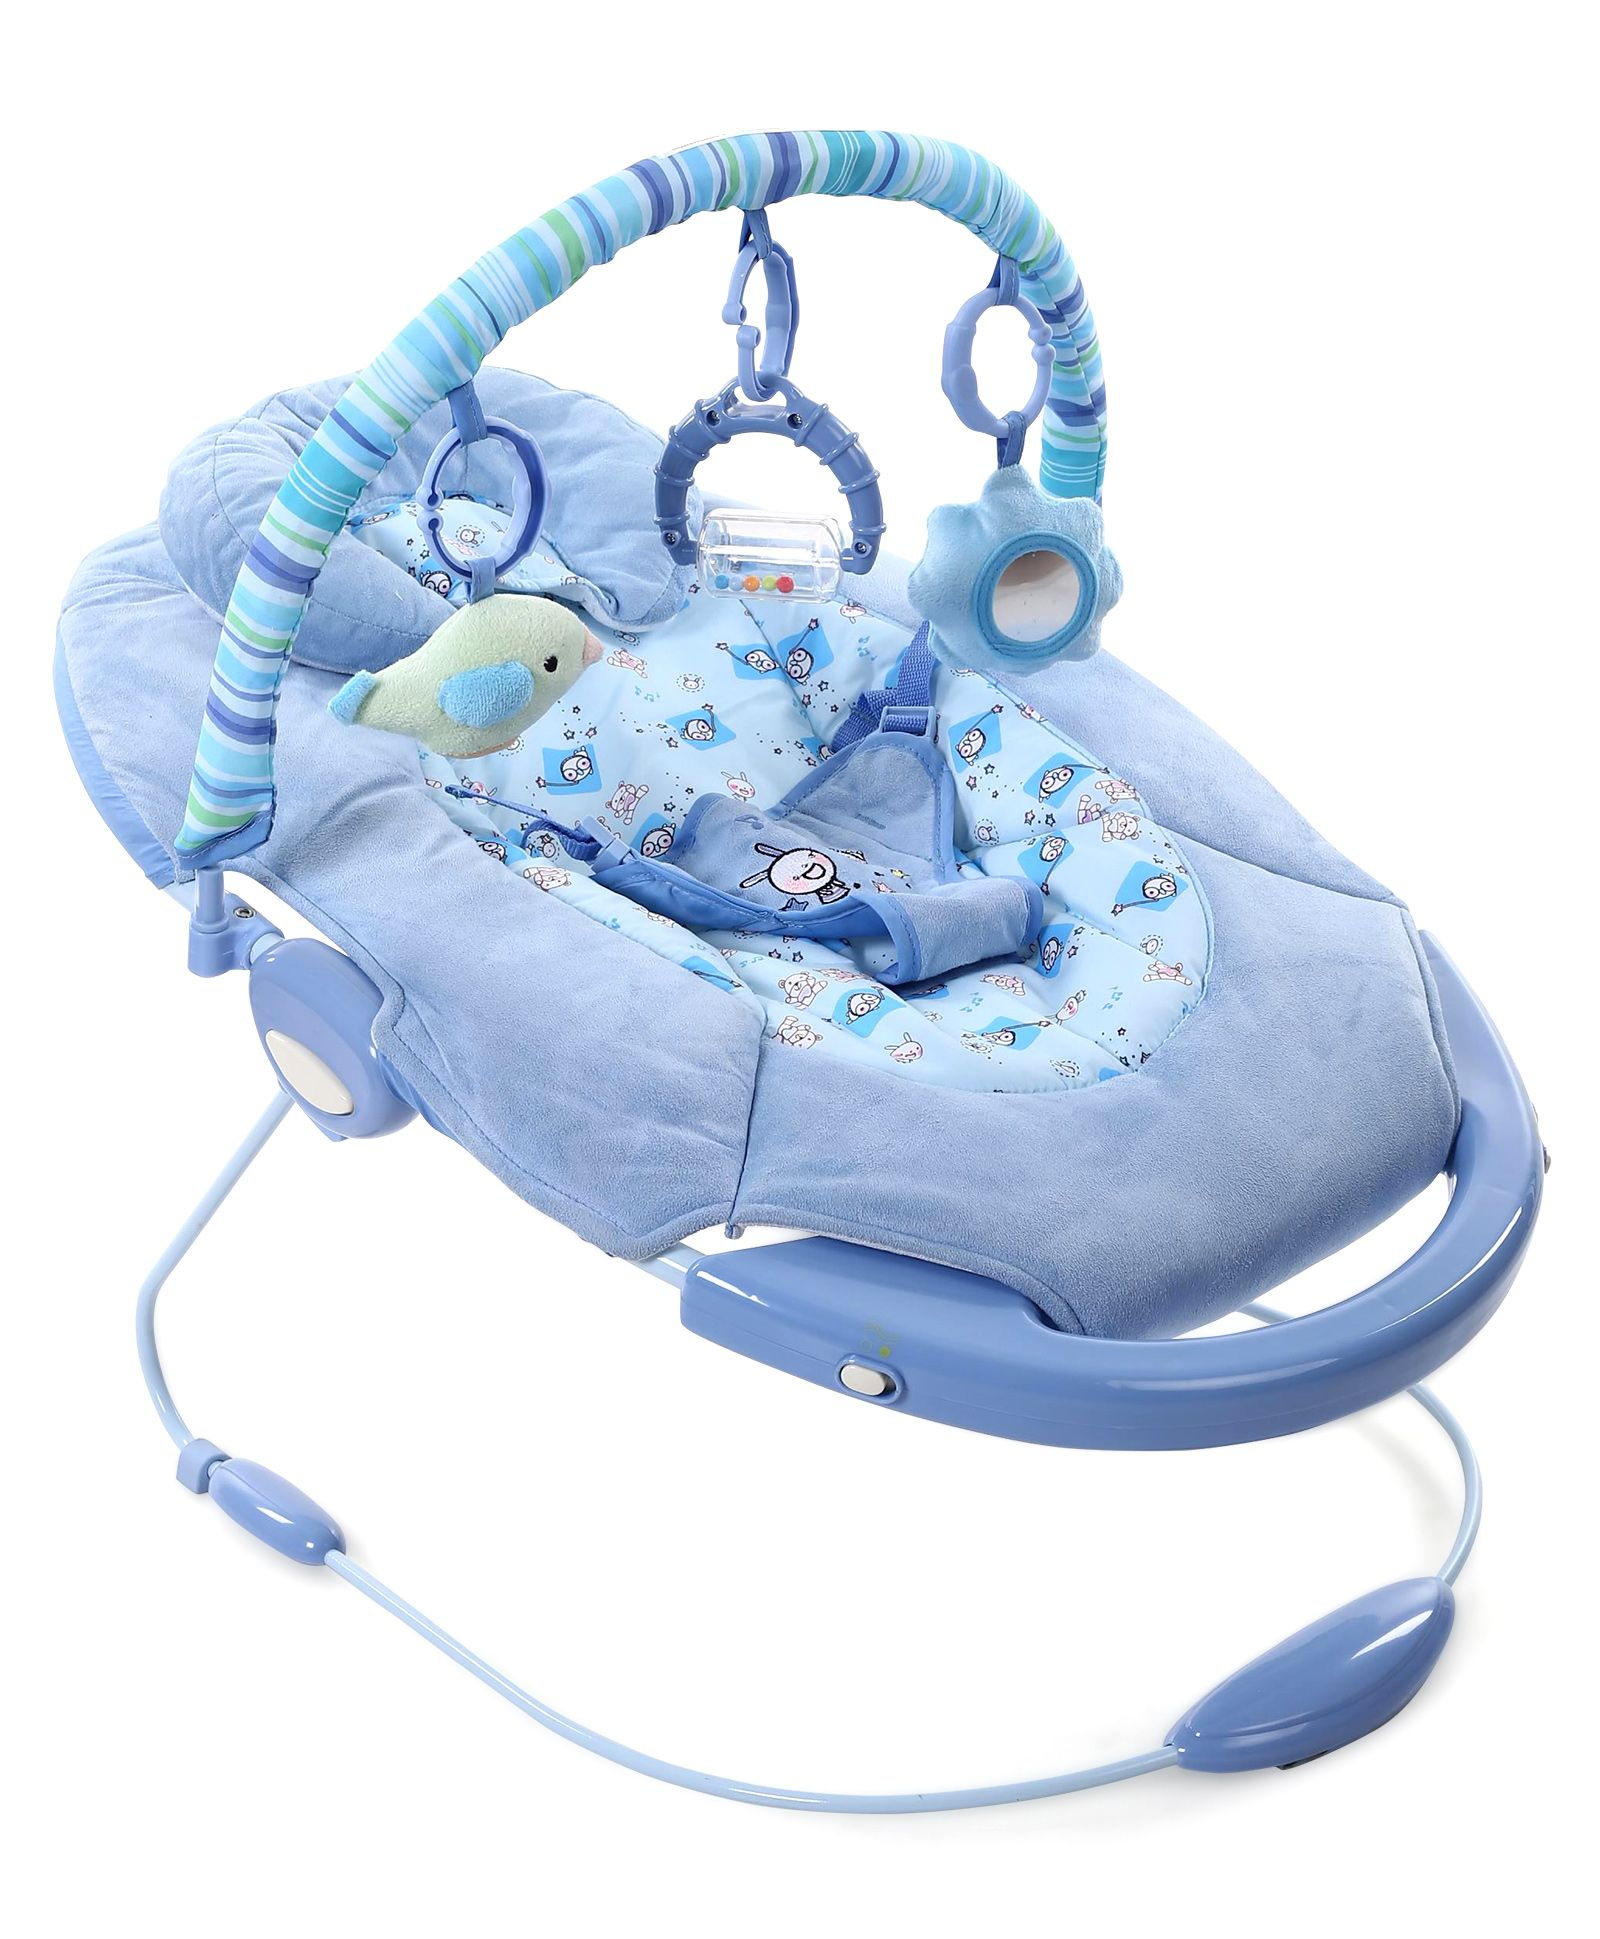 Baby Cradle And Soothing Vibrations Bouncer Animal Print - Sky Blue